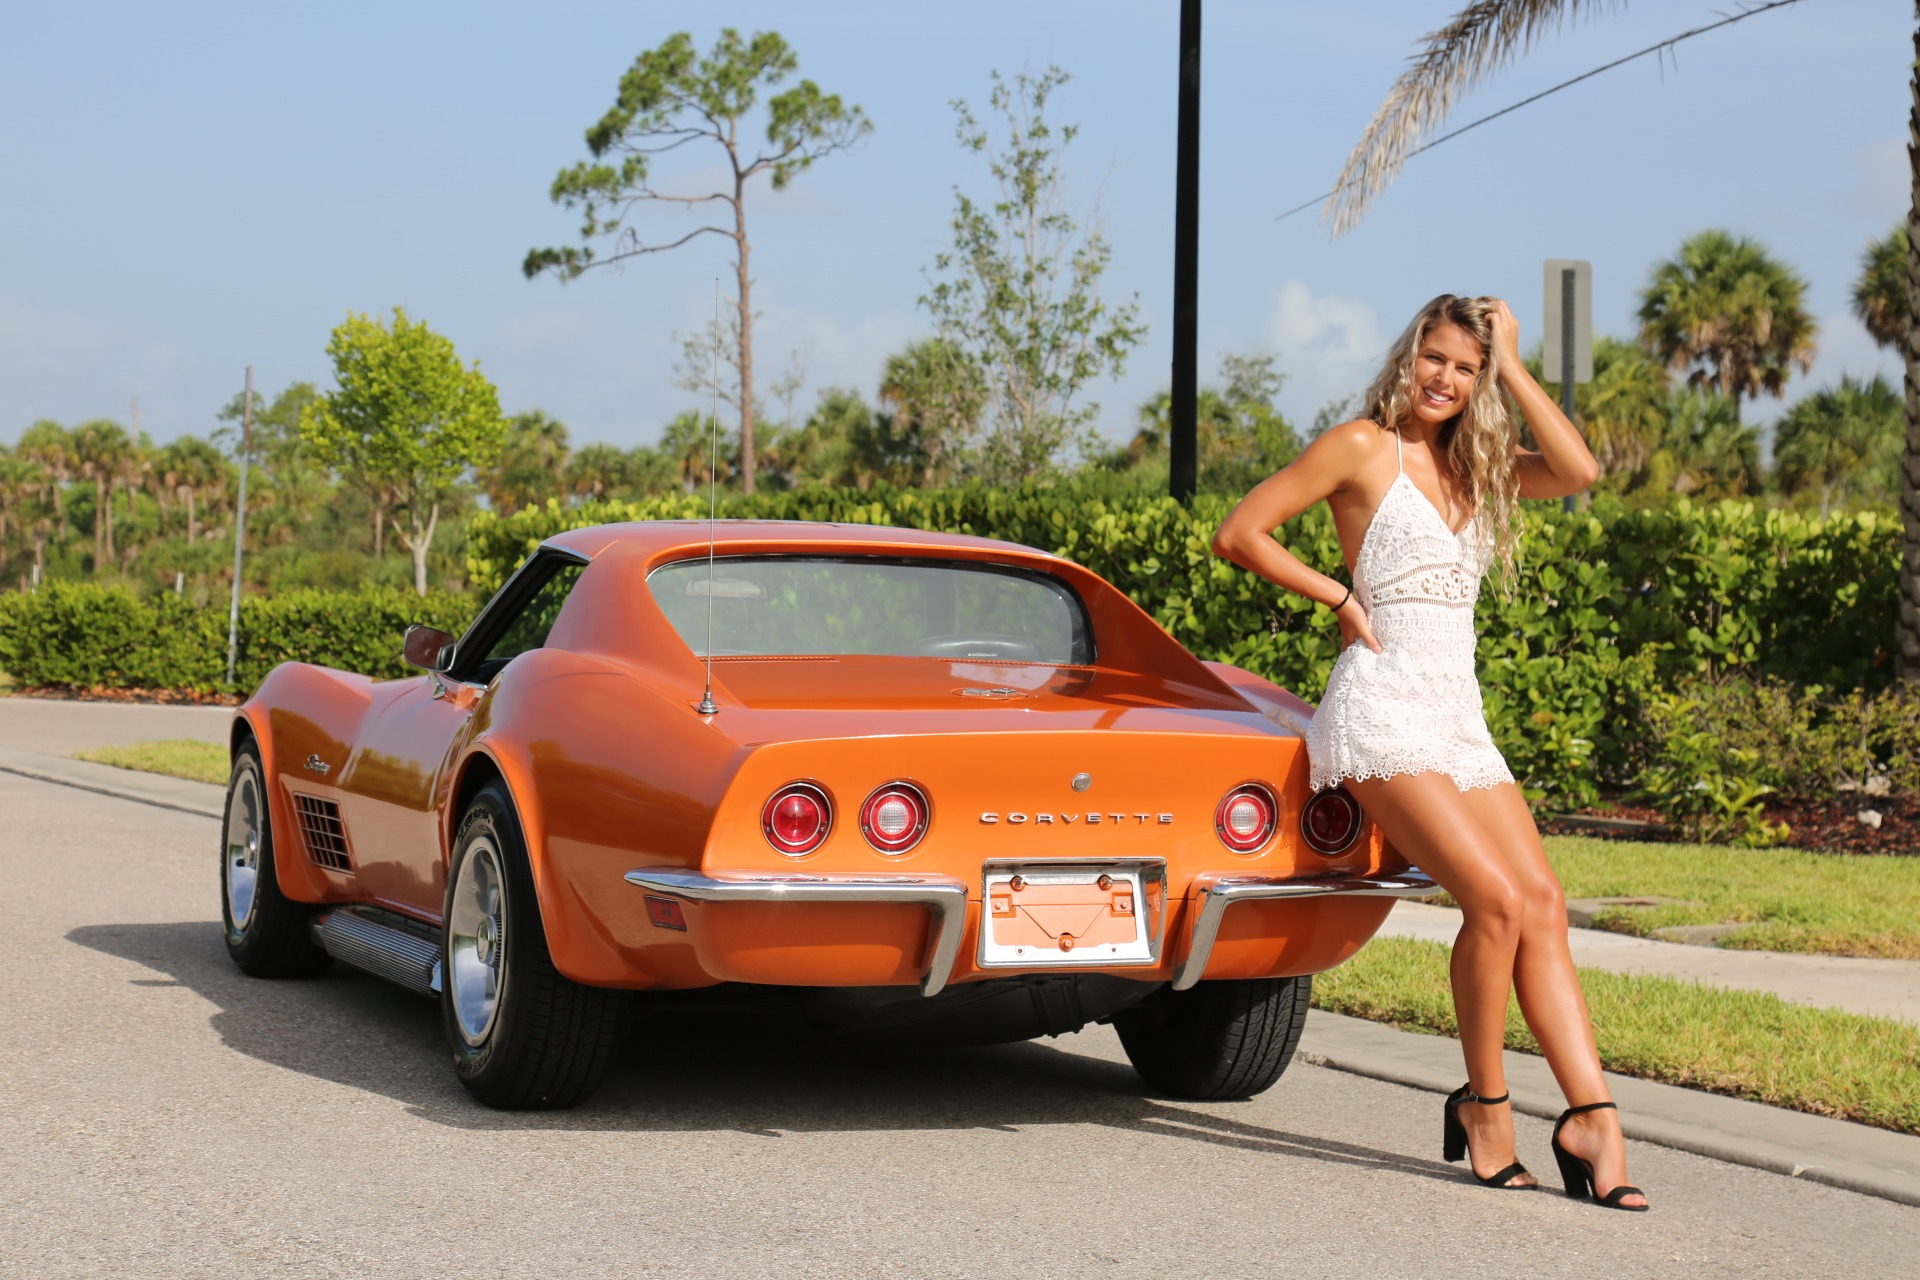 Used 1971 Chevy Corvette Removable rear Glass and T Top 4 speed for sale Sold at Muscle Cars for Sale Inc. in Fort Myers FL 33912 7